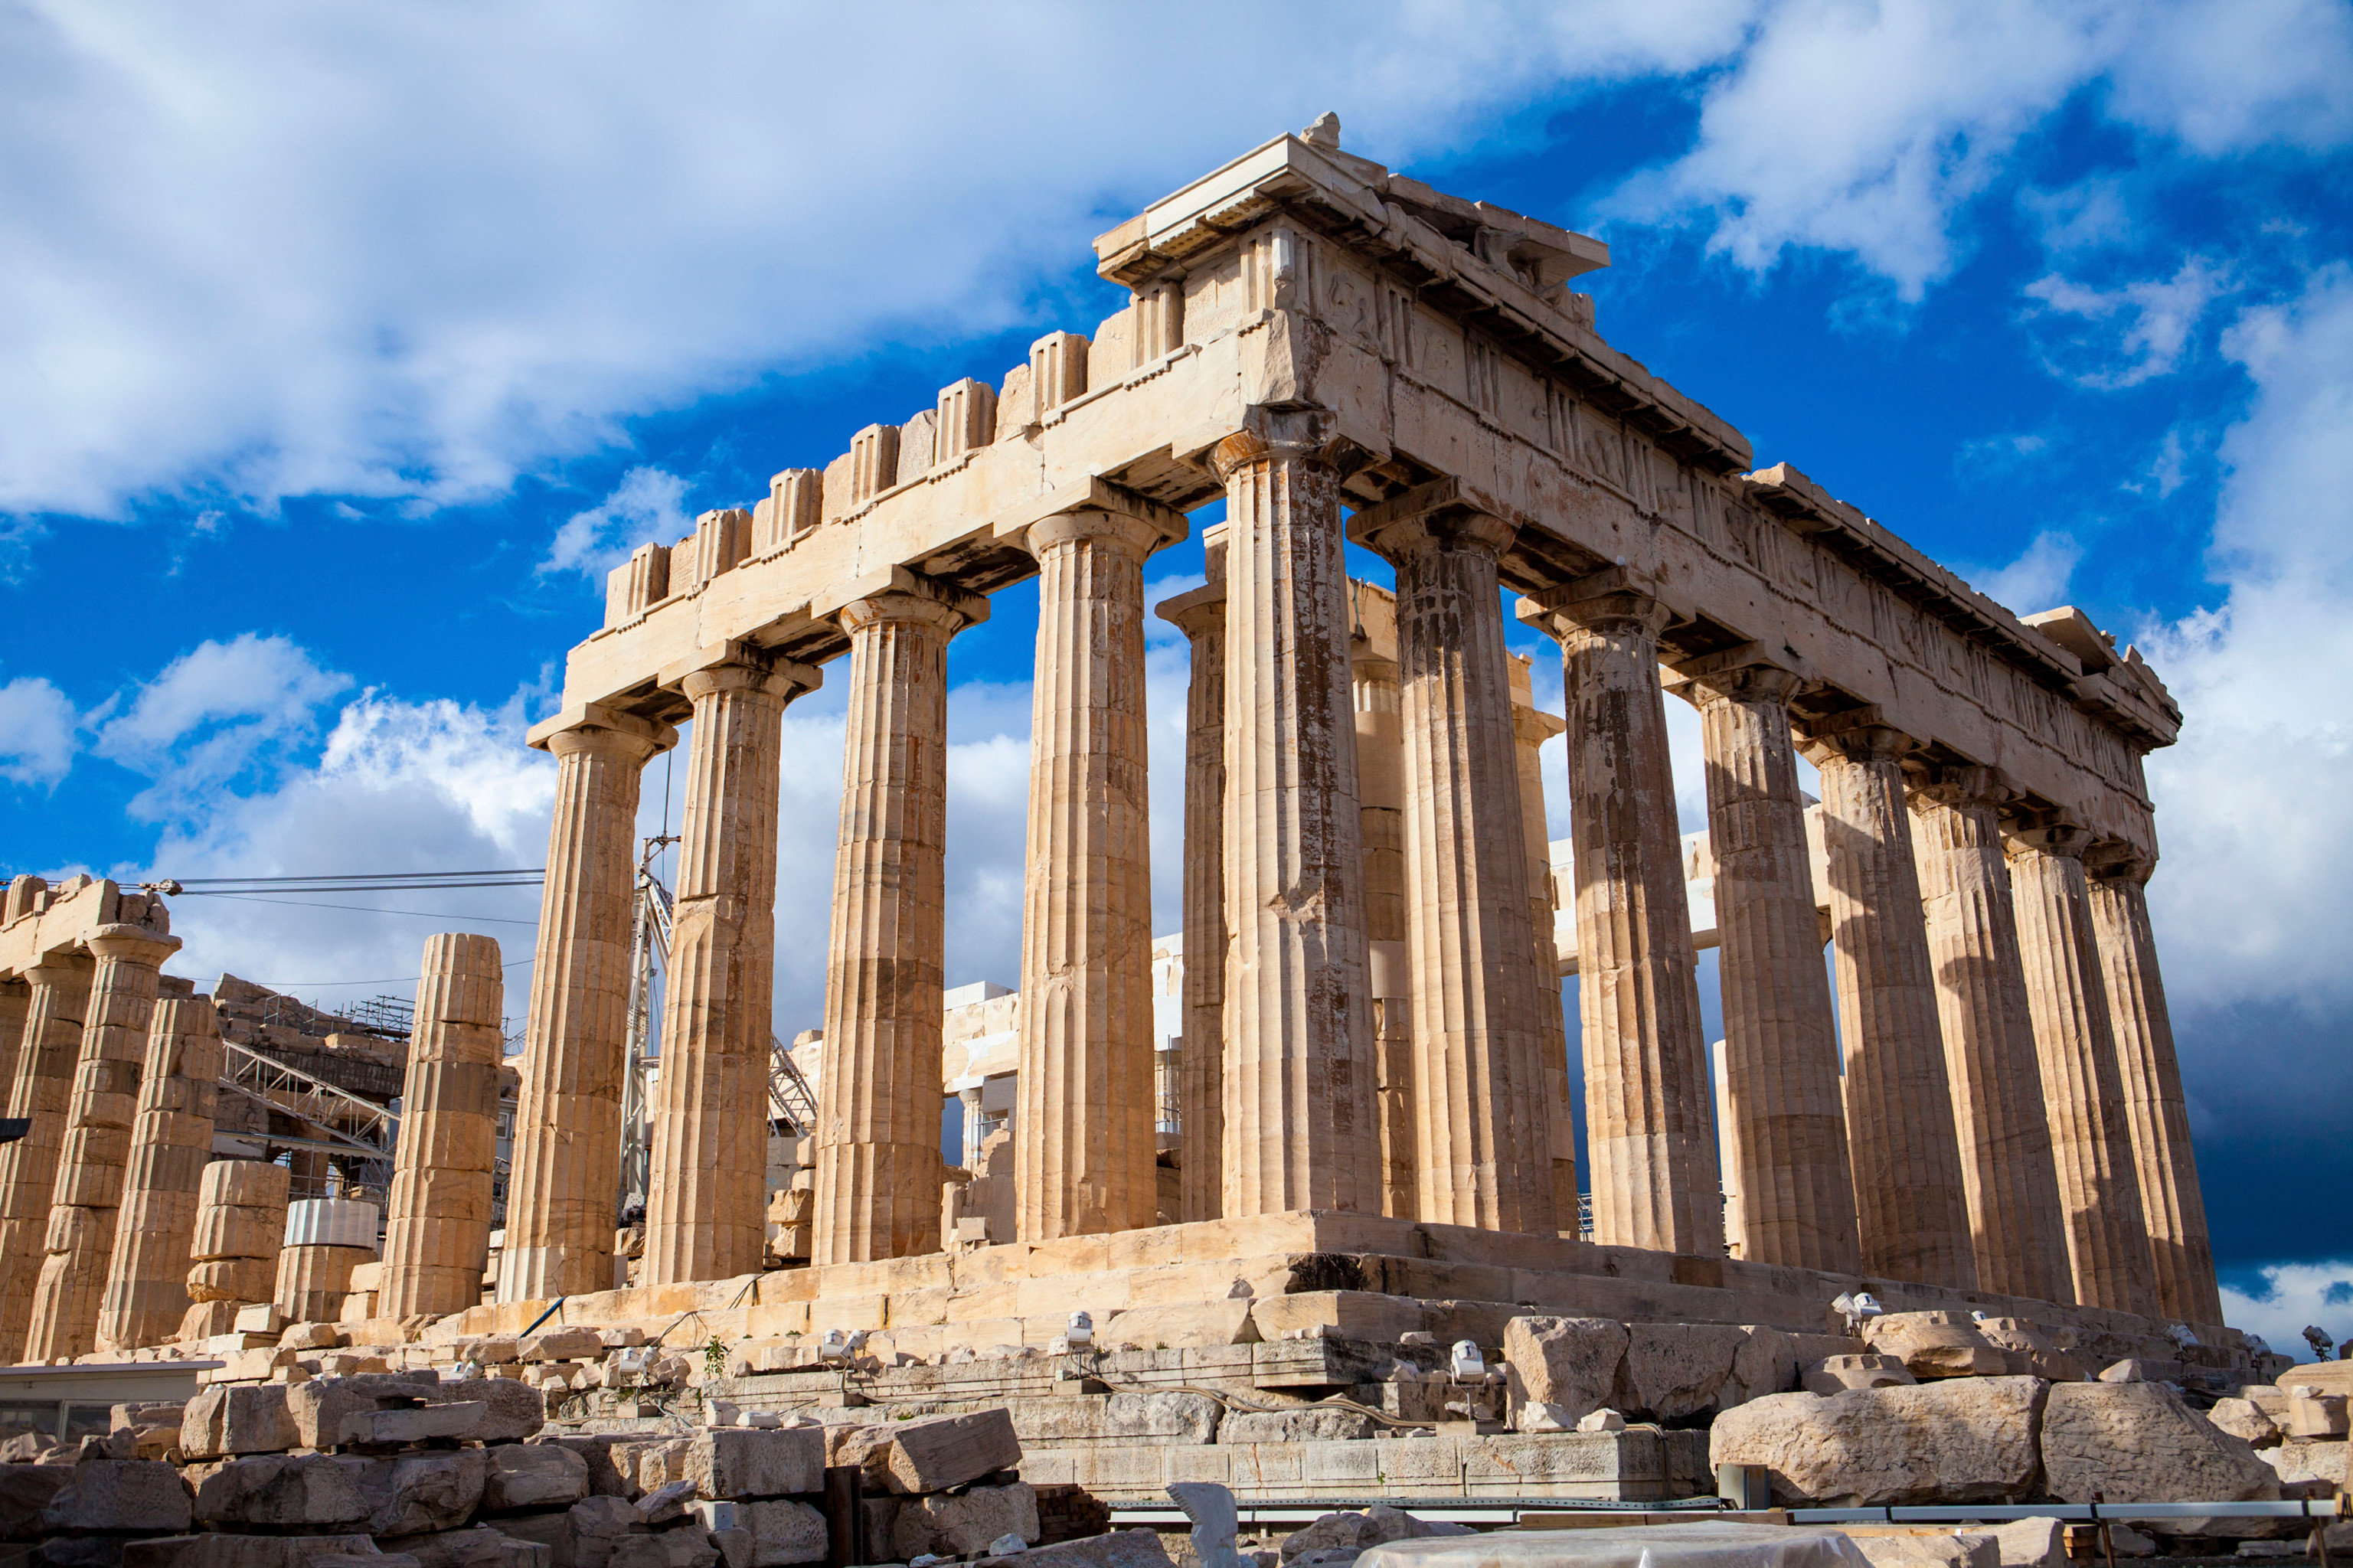 Architecture Buildings Elegant Exterior Landmarks sky building ancient greek temple roman temple ancient roman architecture landmark historic site structure Ruins archaeological site ruin ancient history column monument place of worship temple hindu temple unesco world heritage site palace stone